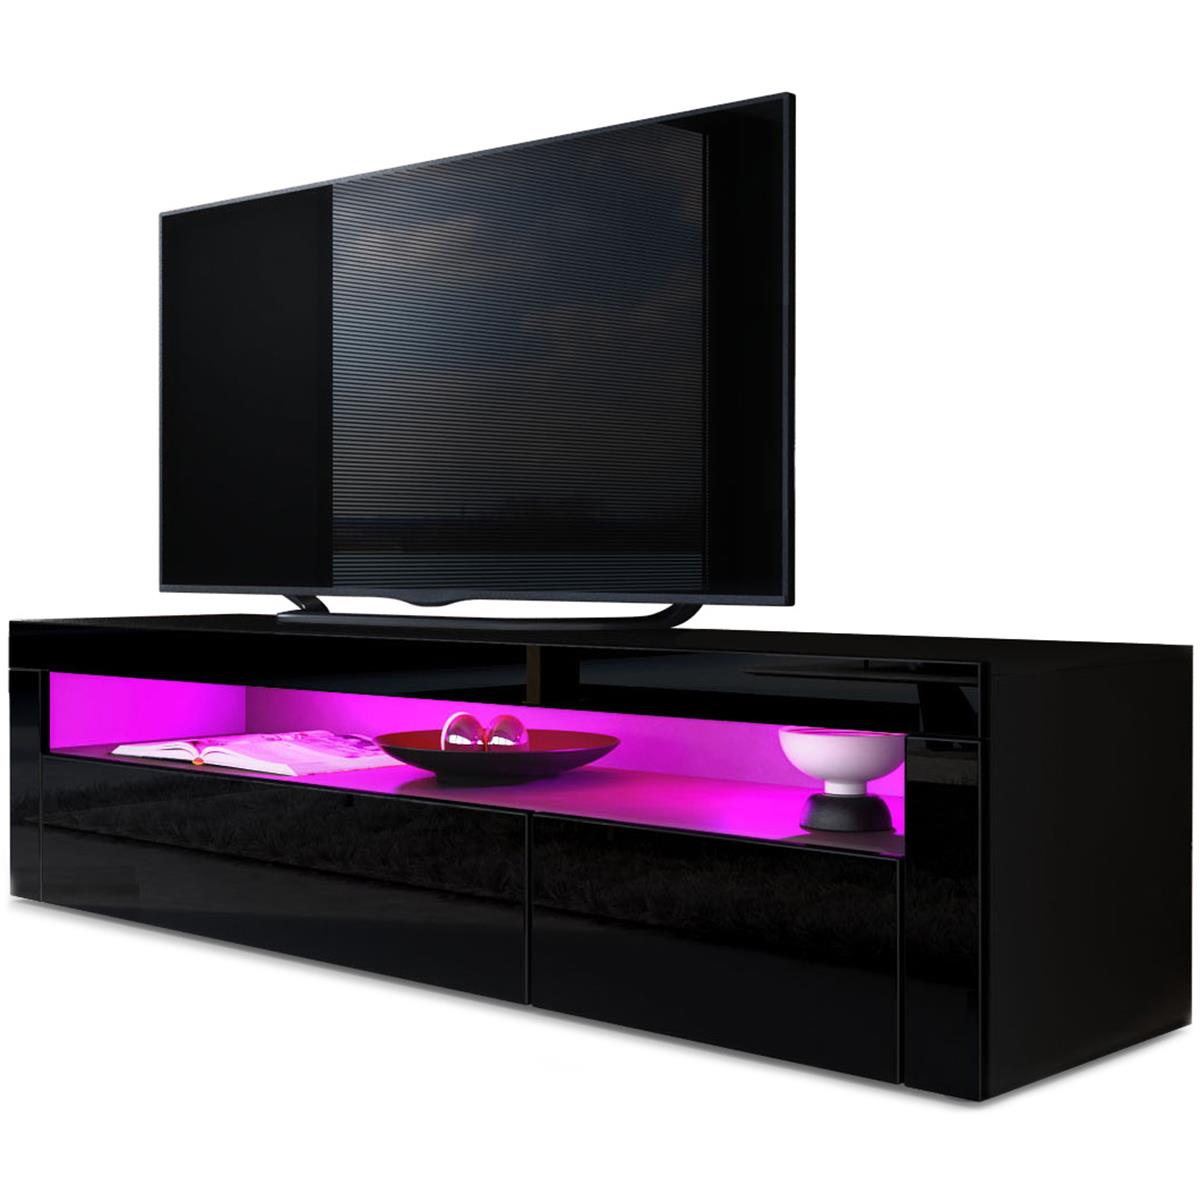 tv board lowboard valencia korpus in schwarz matt front in schwarz hochglanz mit rahmen in. Black Bedroom Furniture Sets. Home Design Ideas